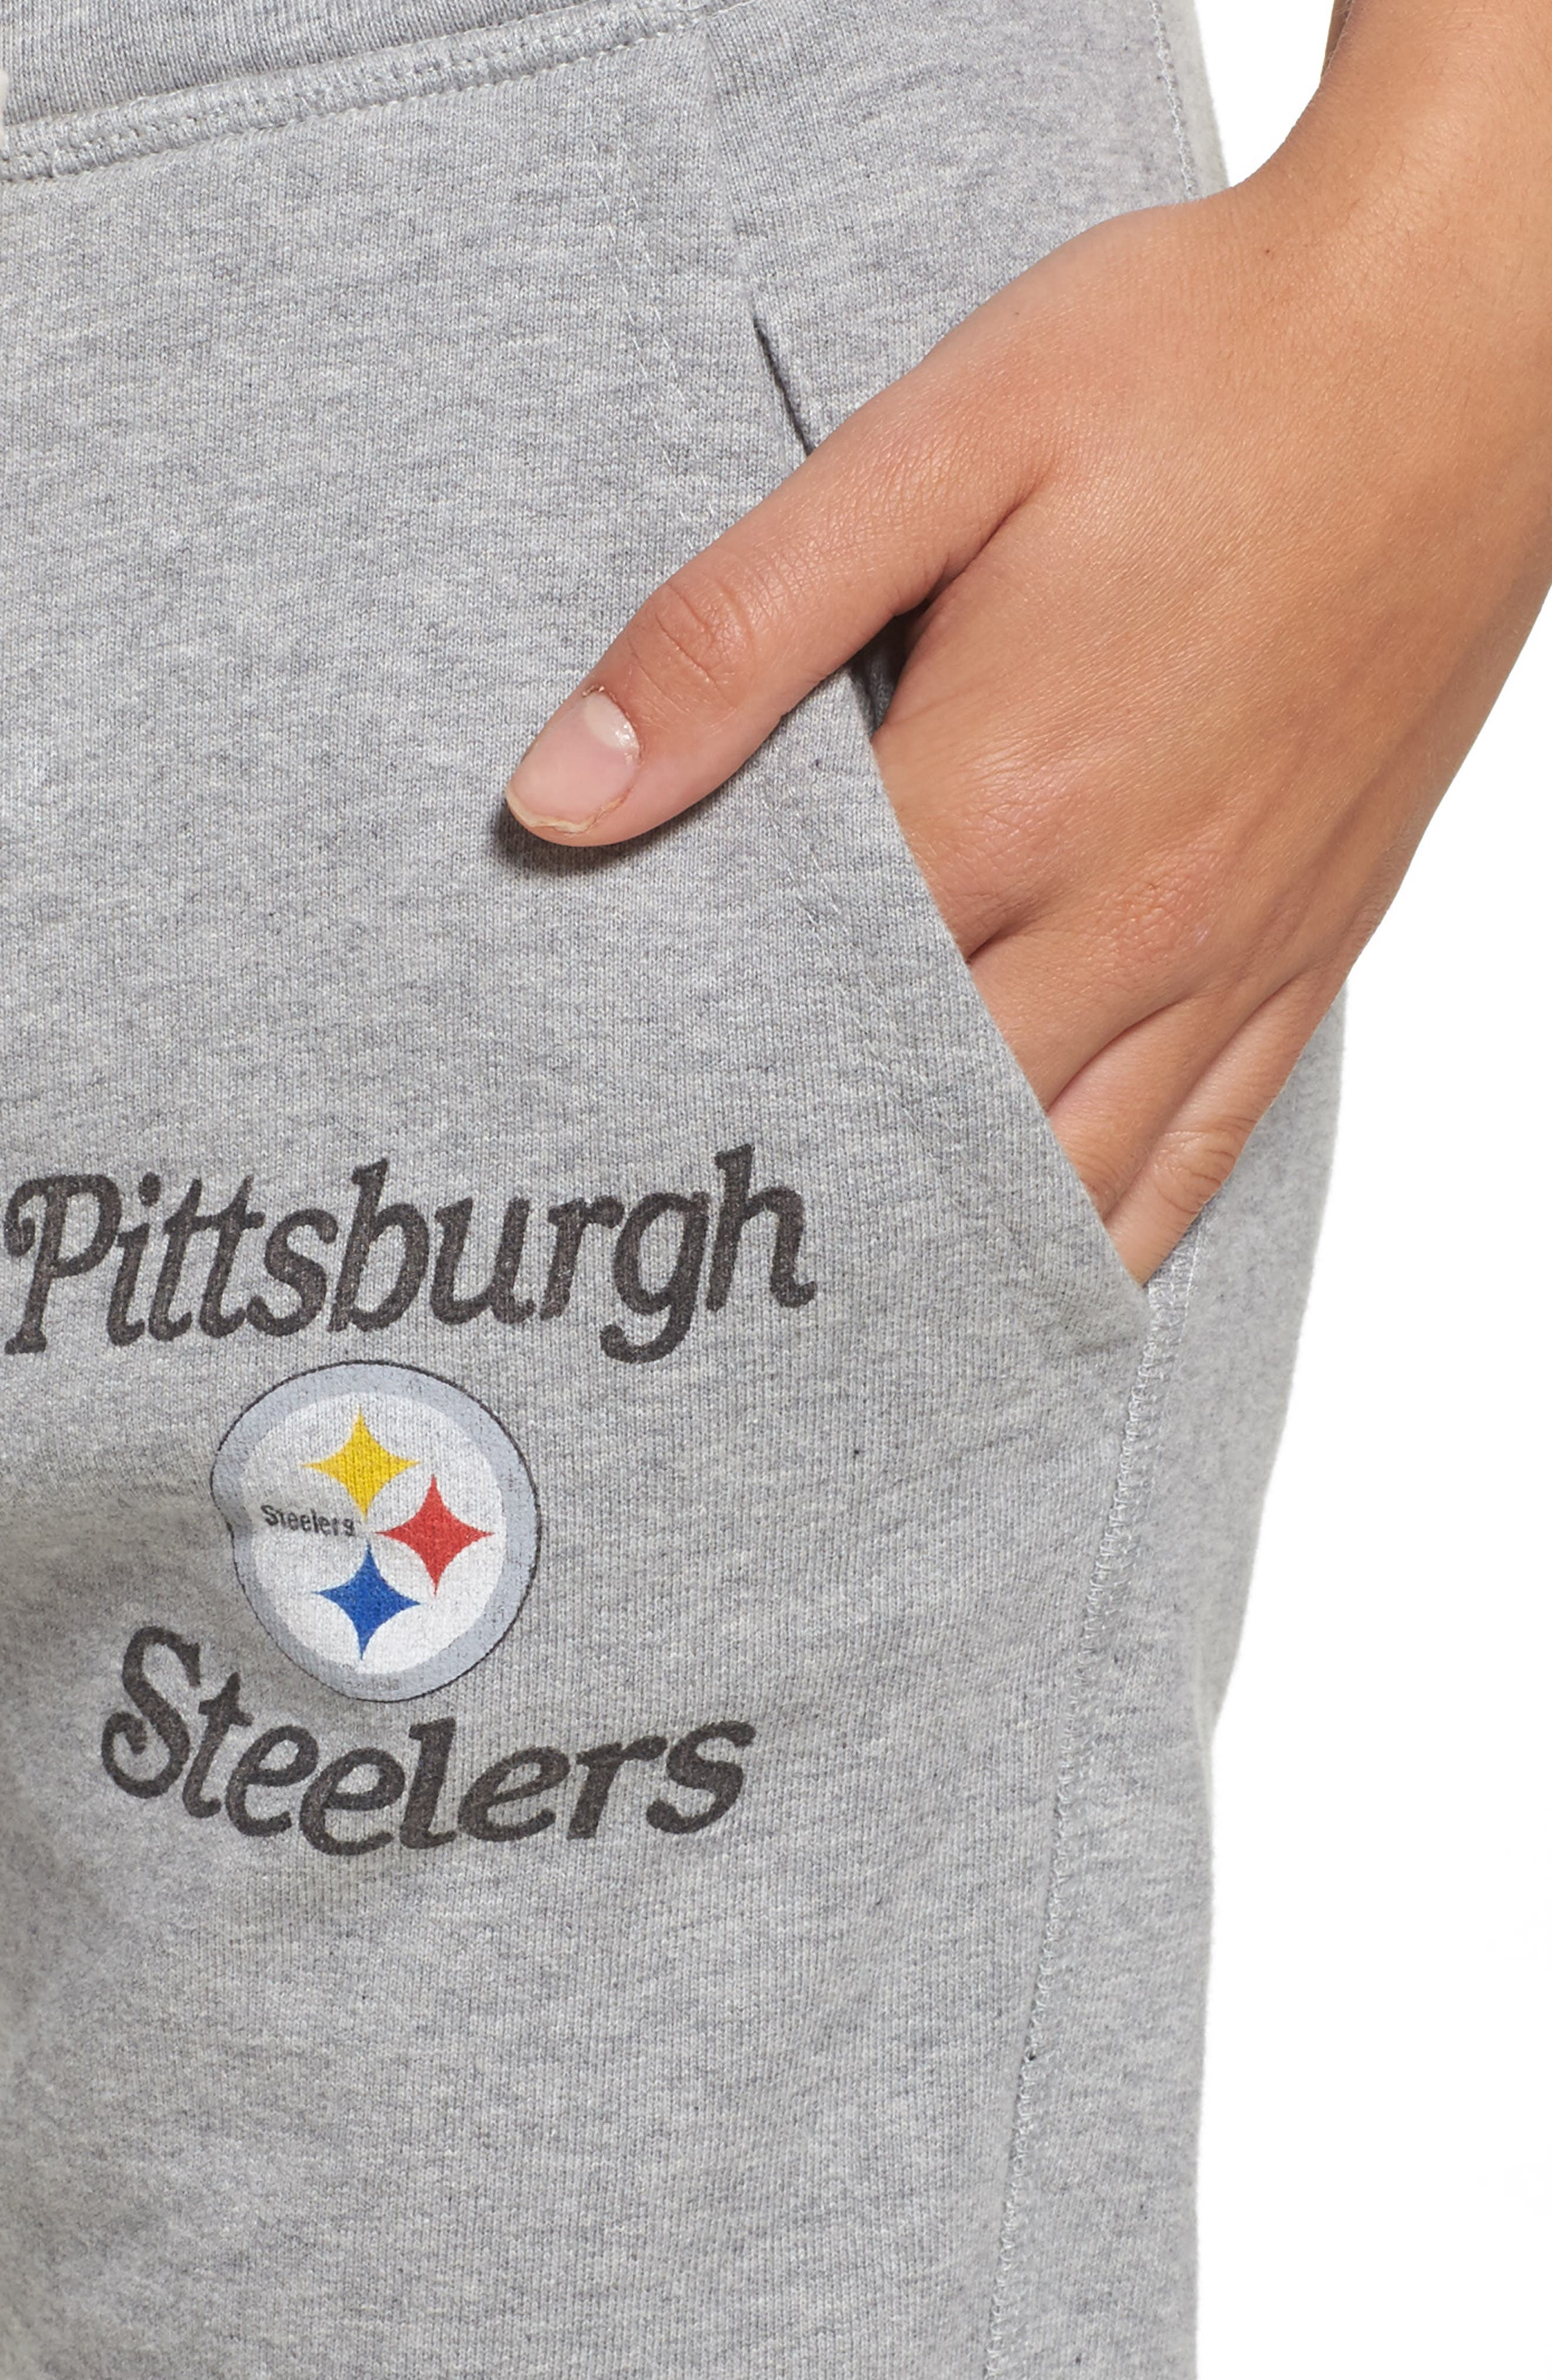 NFL Pittsburgh Steelers Sunday Sweatpants,                             Alternate thumbnail 4, color,                             028